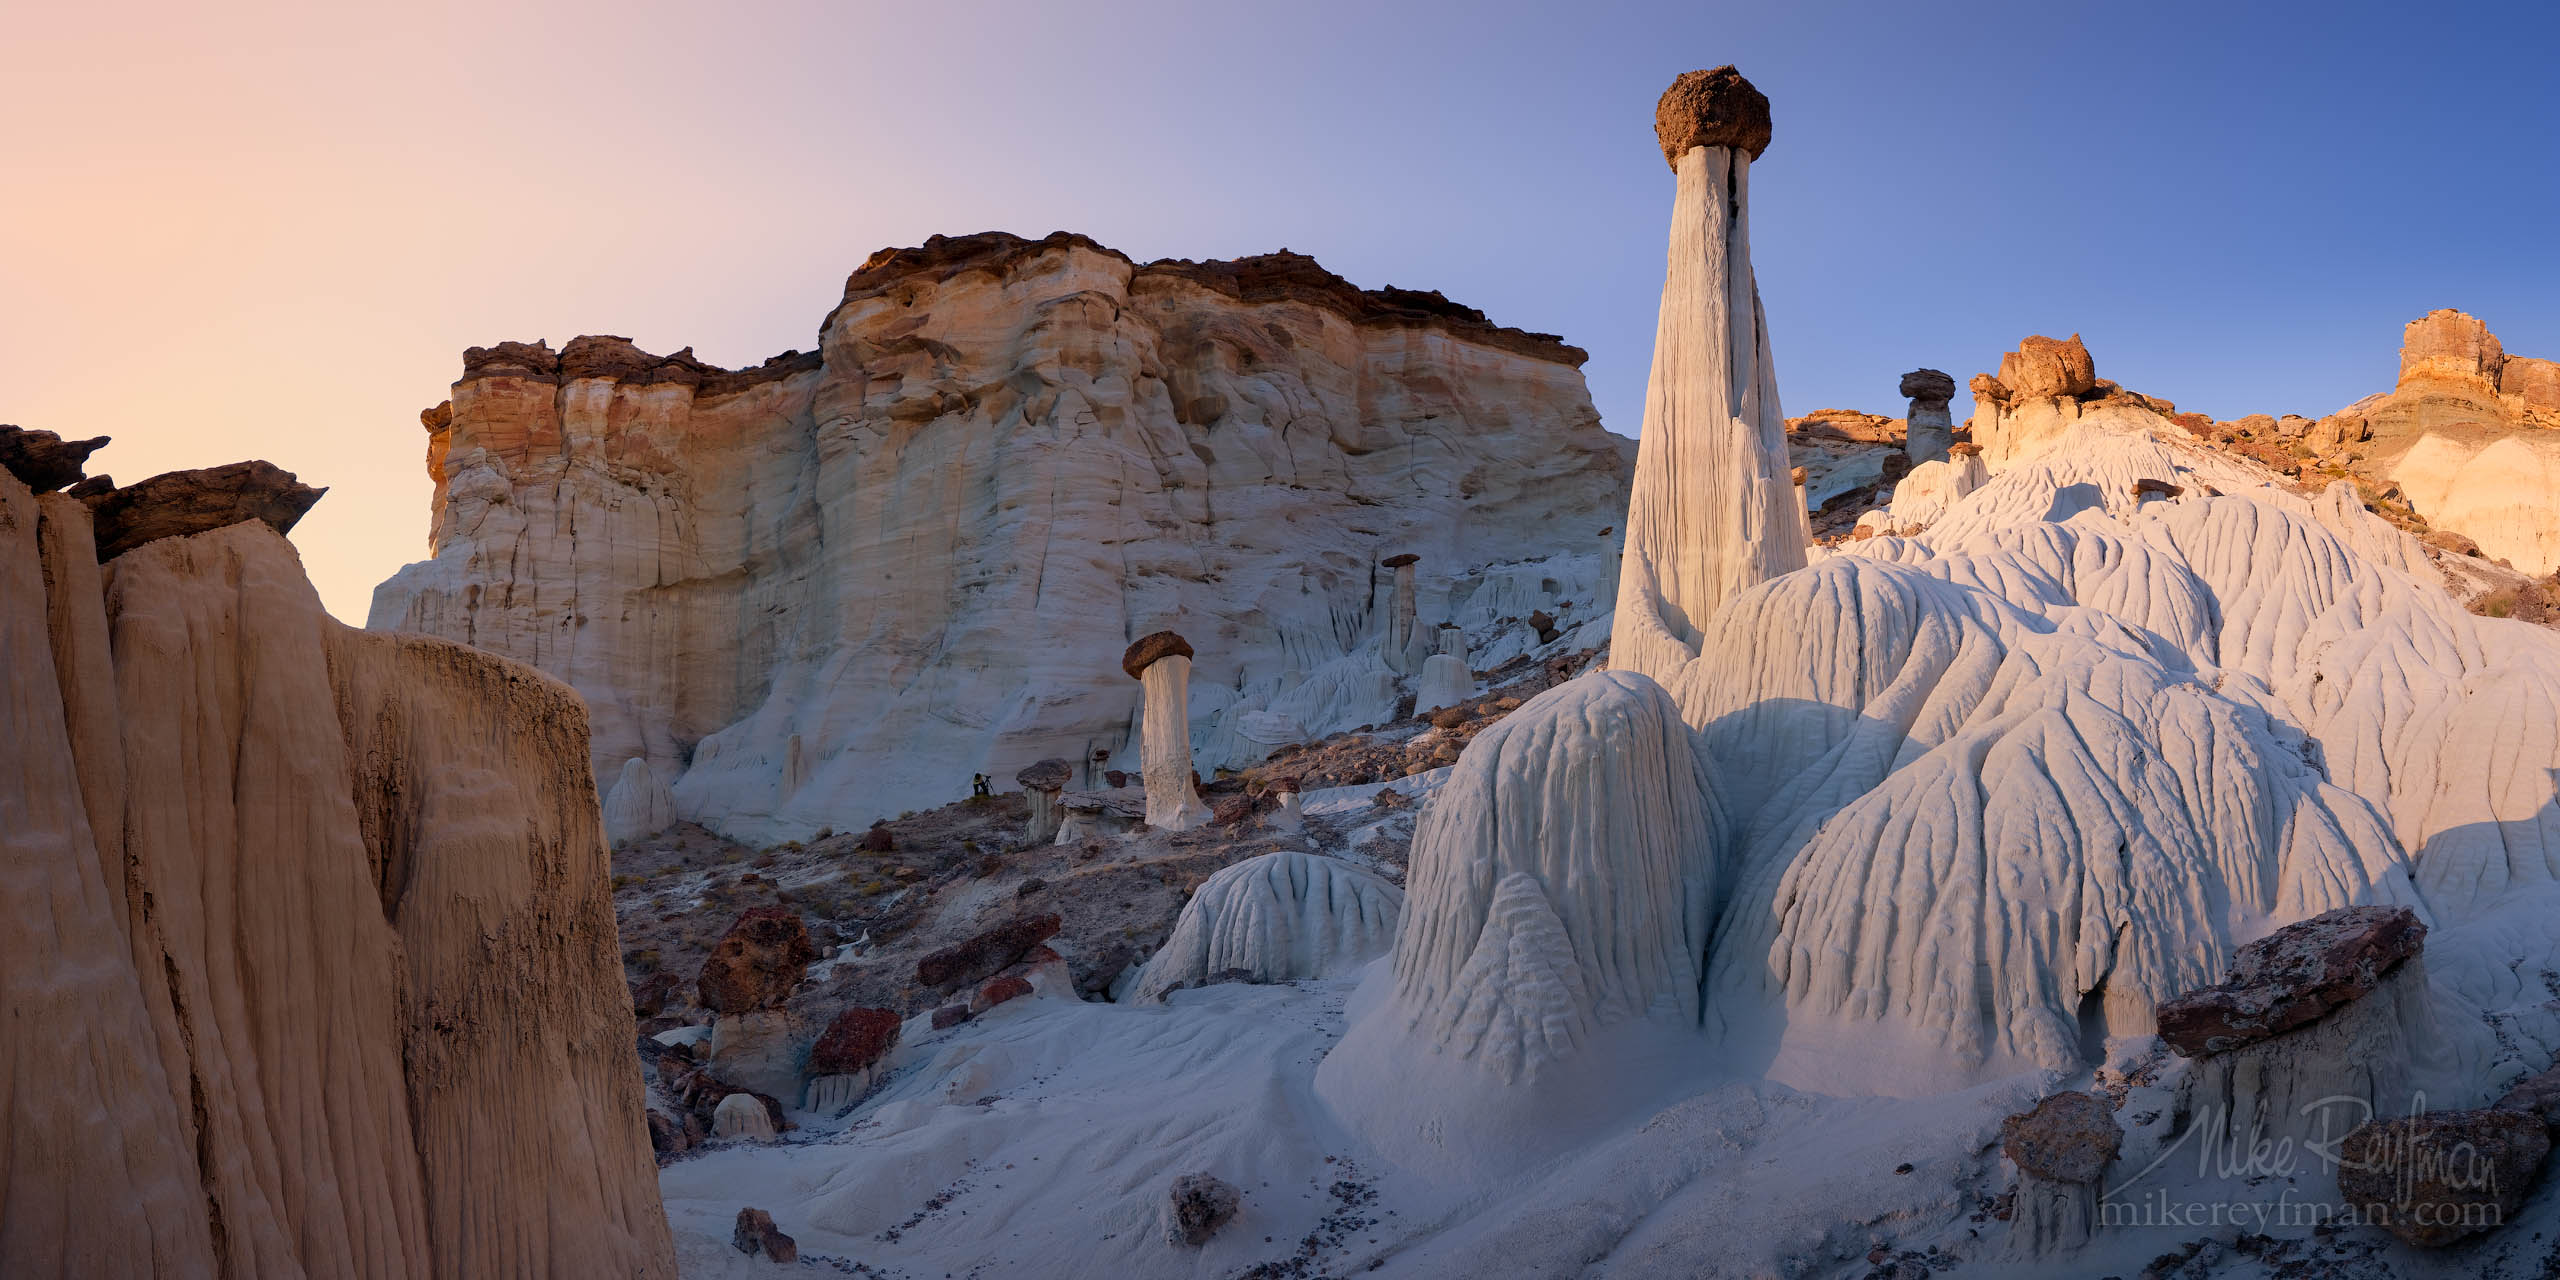 Towers of Silence. Wahweap Hoodoos, Grand Staircase-Escalante, National Monument, Utah P12-MRO3X5821-27-Pano - Selected panoramic images with 2:1 aspect ratio - Mike Reyfman Photography